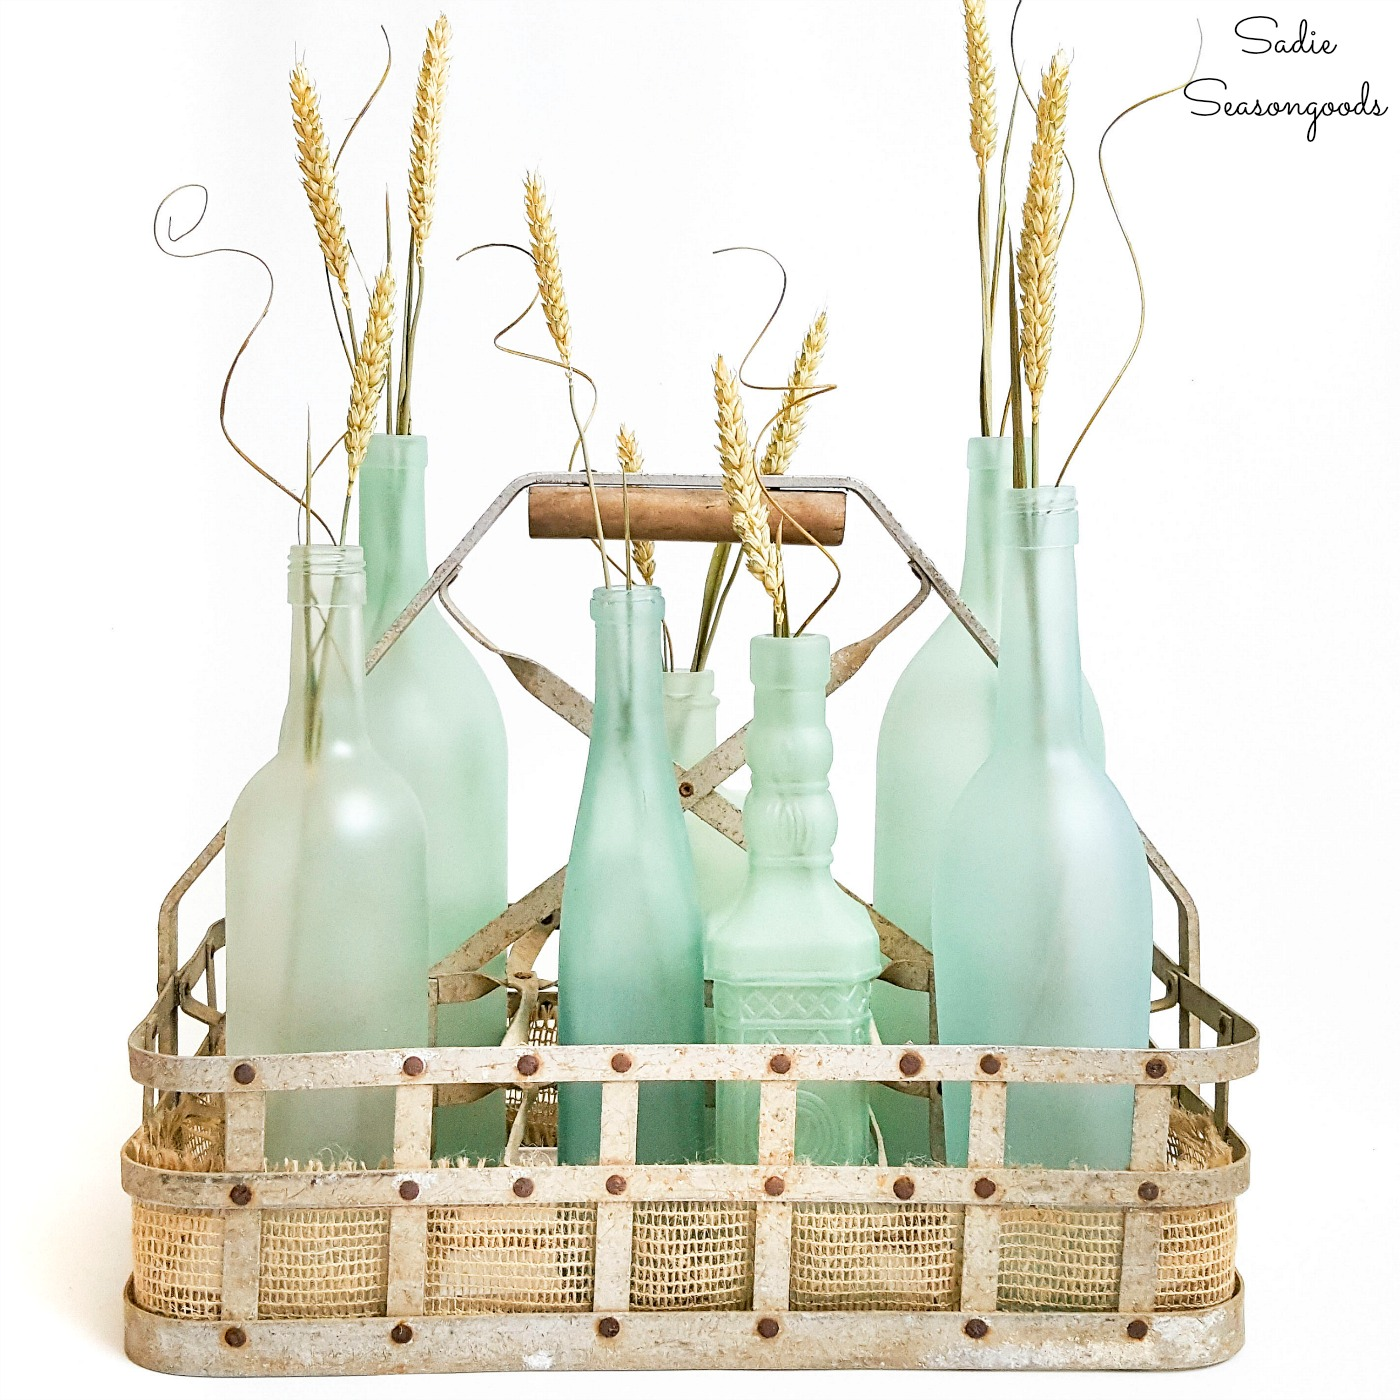 Sea Glass Bottles from the Recycling Bin for Coastal Decor